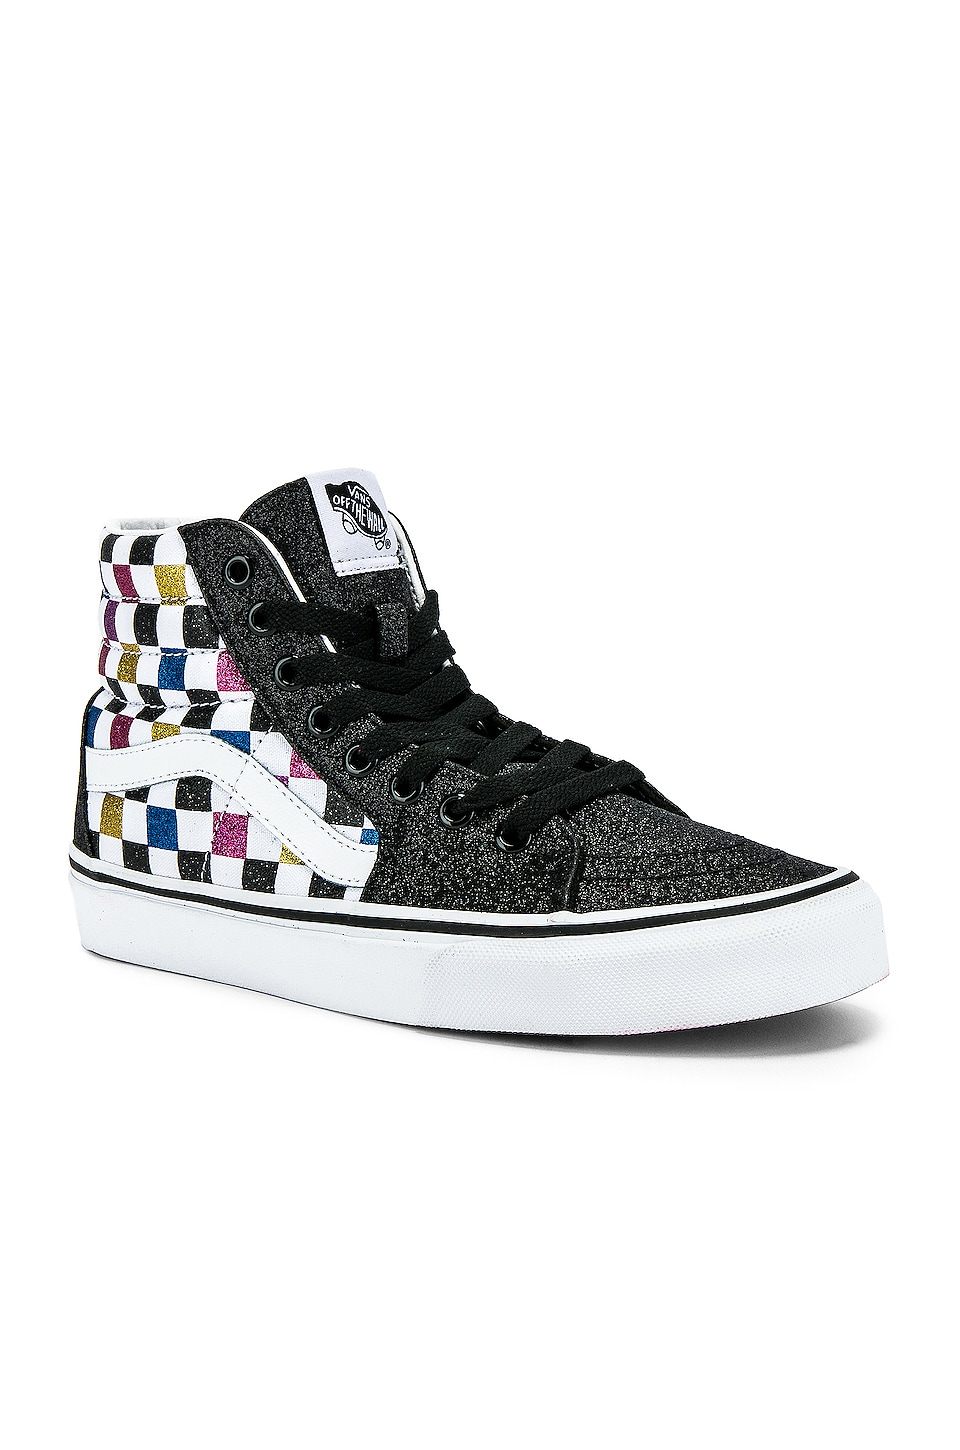 Vans Sk8-Hi in Black & True White